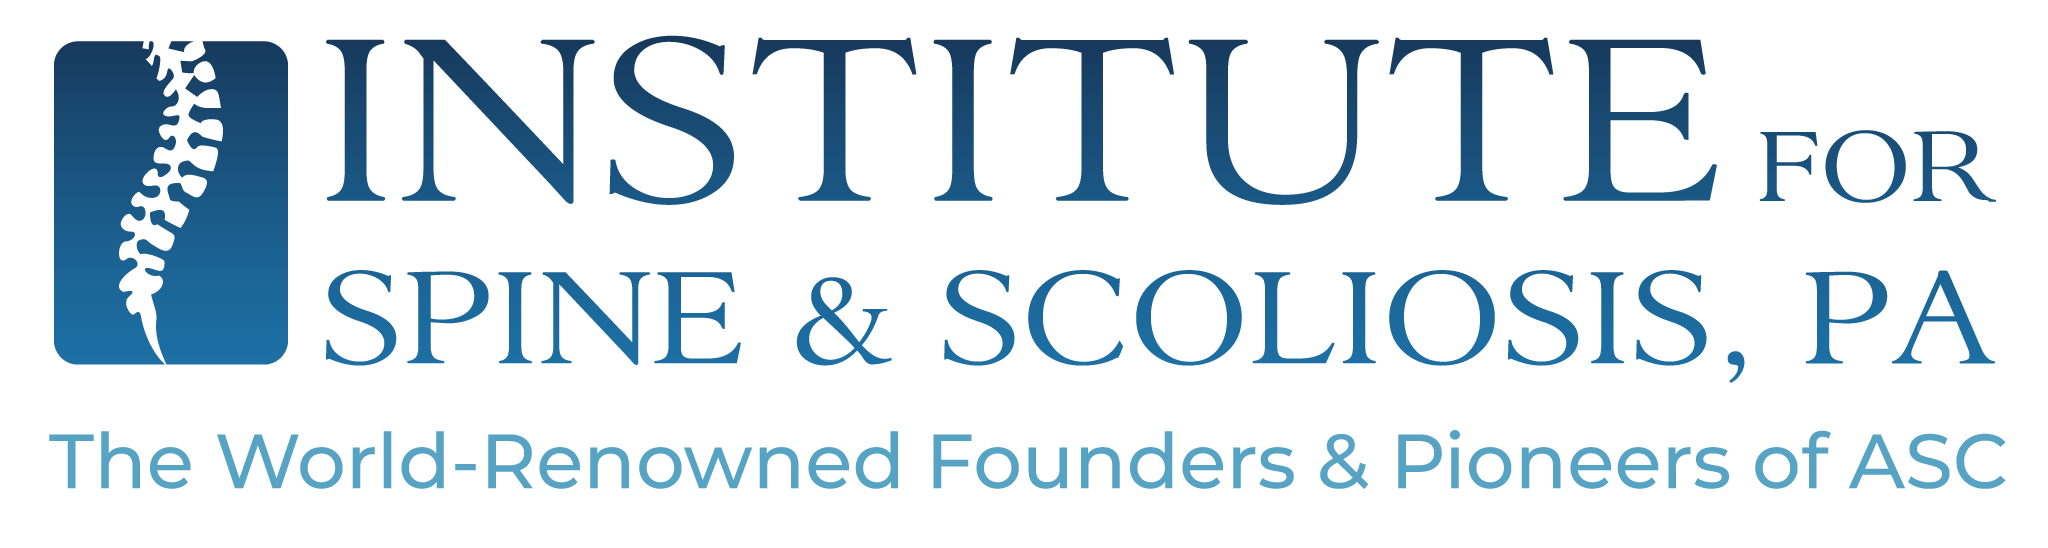 Institute for Spine & Scoliosis, World Renowned Founders and Pioneers of ASC - Flexible Scoliosis Surgery